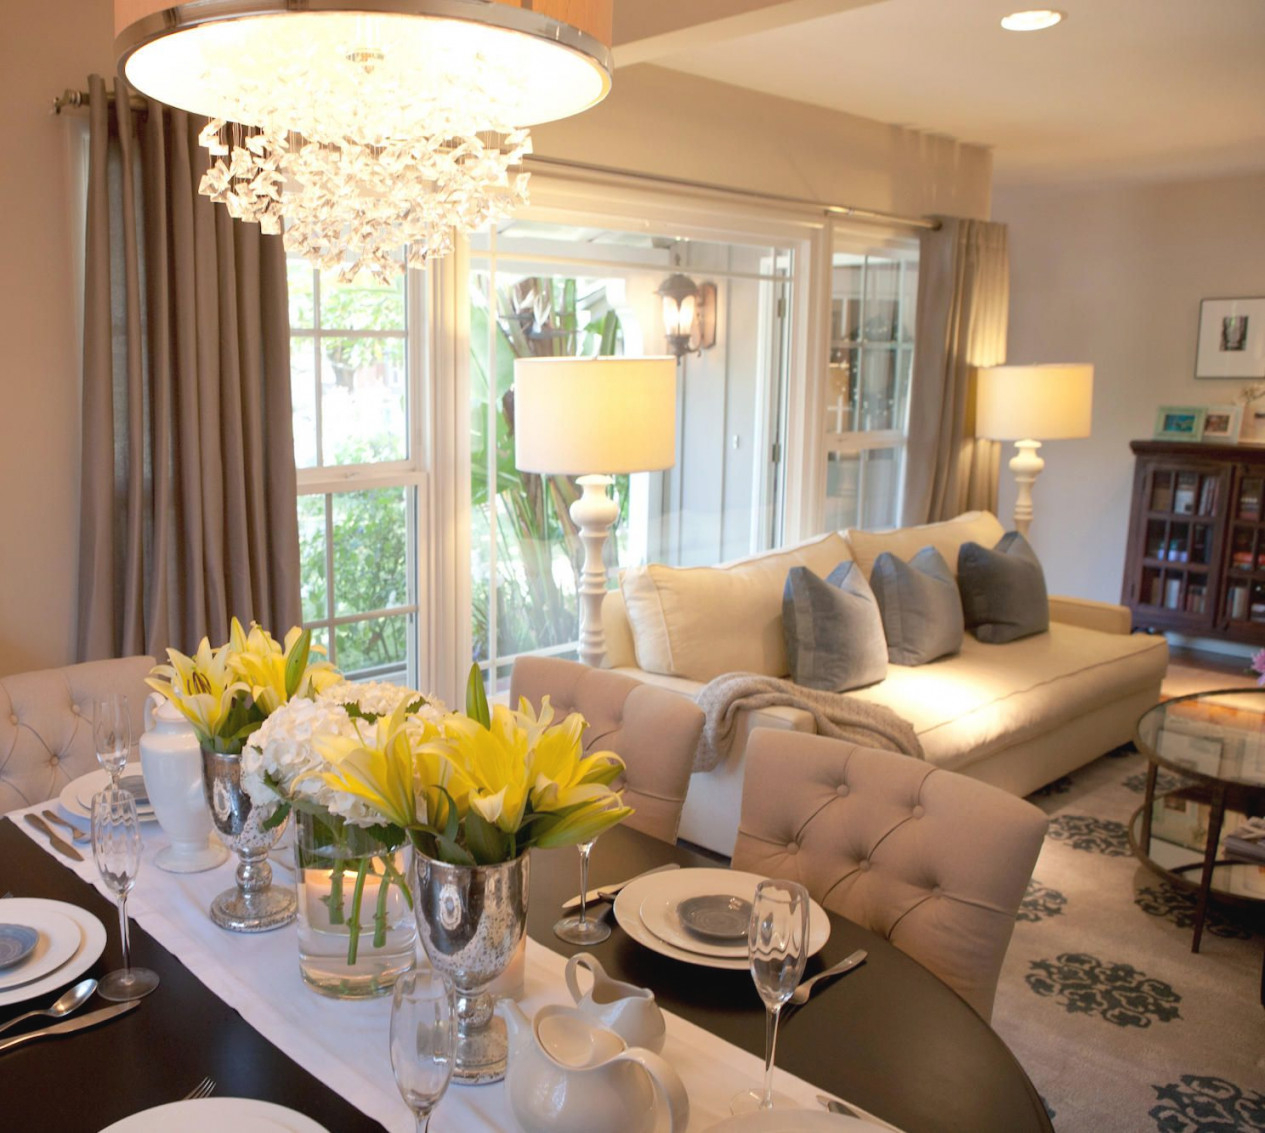 Amaizng Modern Dining Tables Ideas You Need To See: Get within 13+ Beautiful Ideas For Living Room And Dining Room Combo